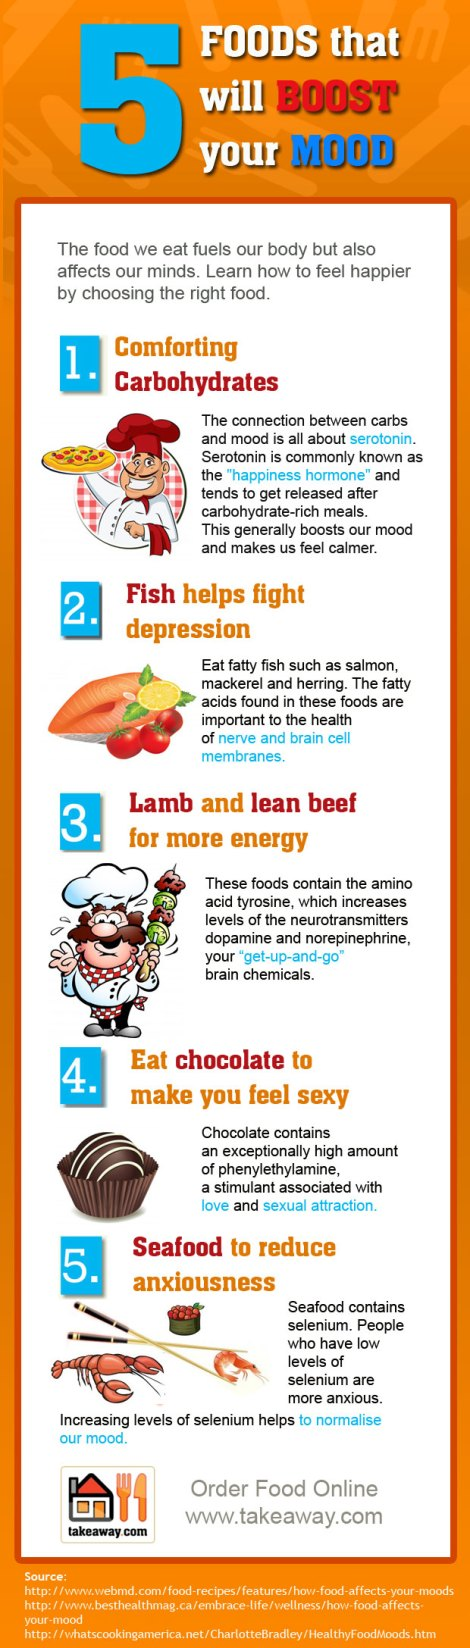 Infographic Displaying 5 Foods To Boost Your Mood